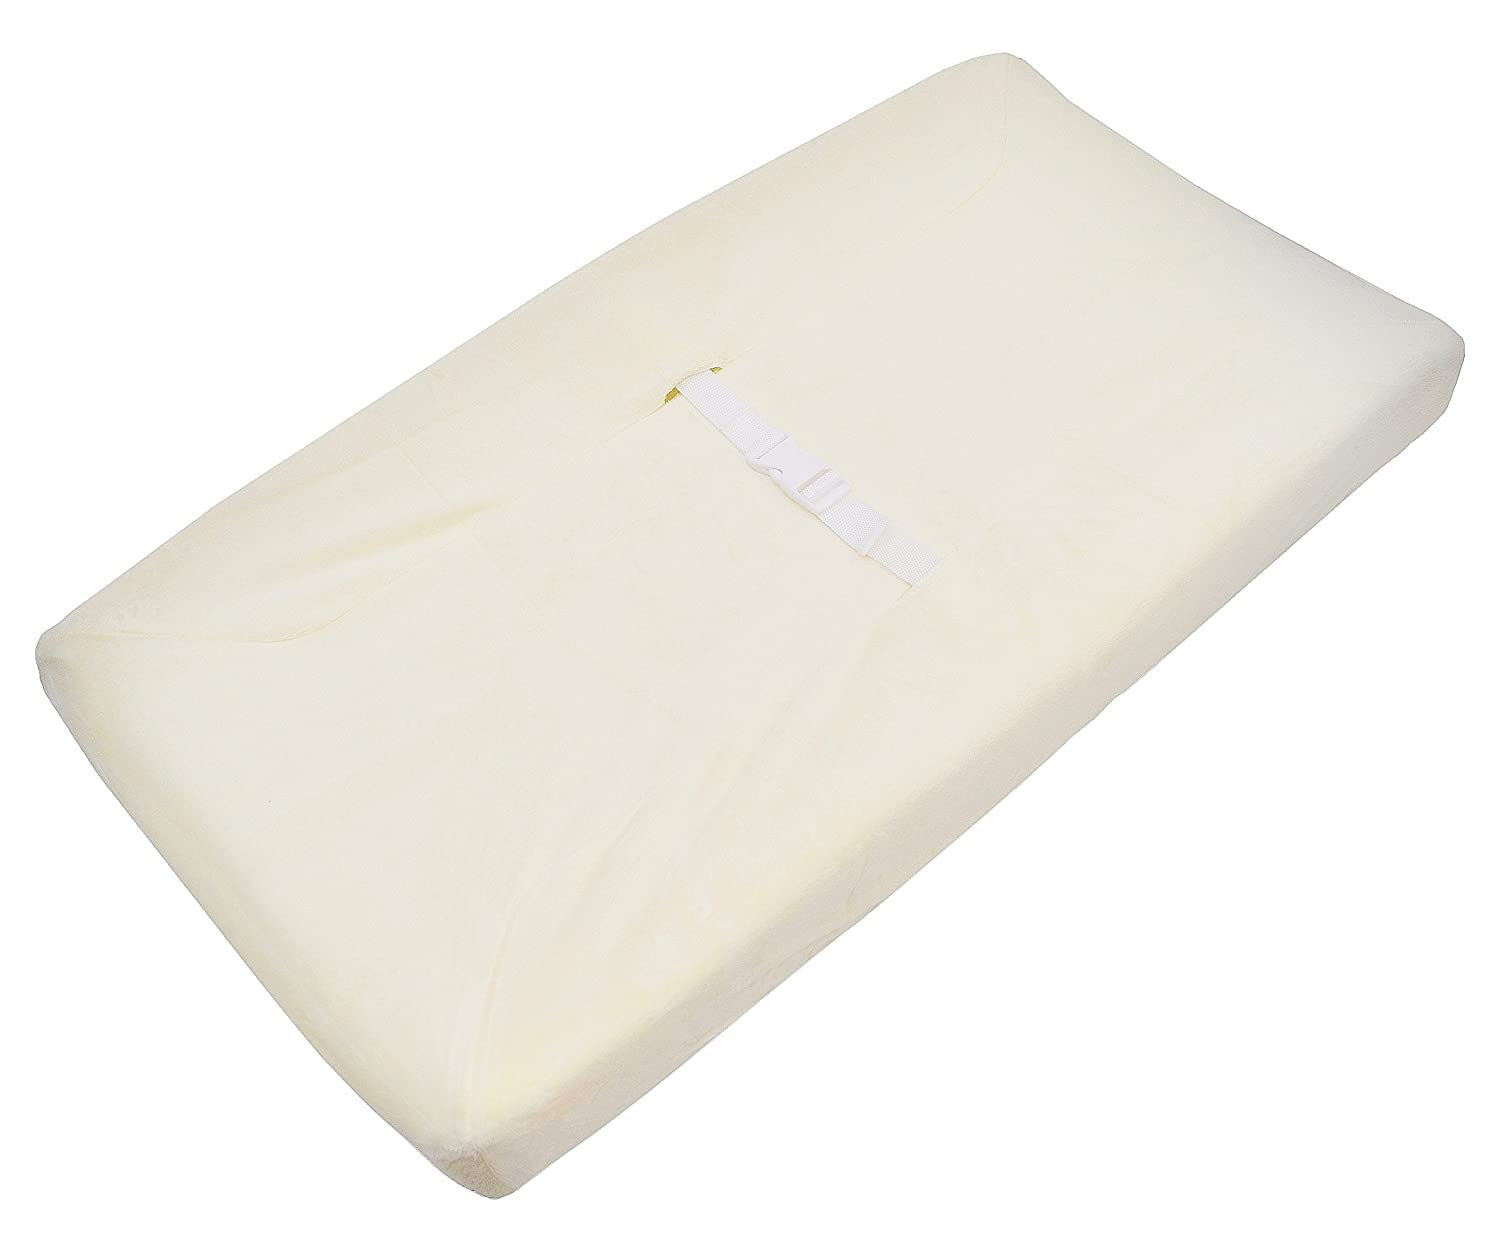 TL Care Heavenly Soft Chenille Fitted Contoured Changing Pad Cover, Ecru 3015-Ecru